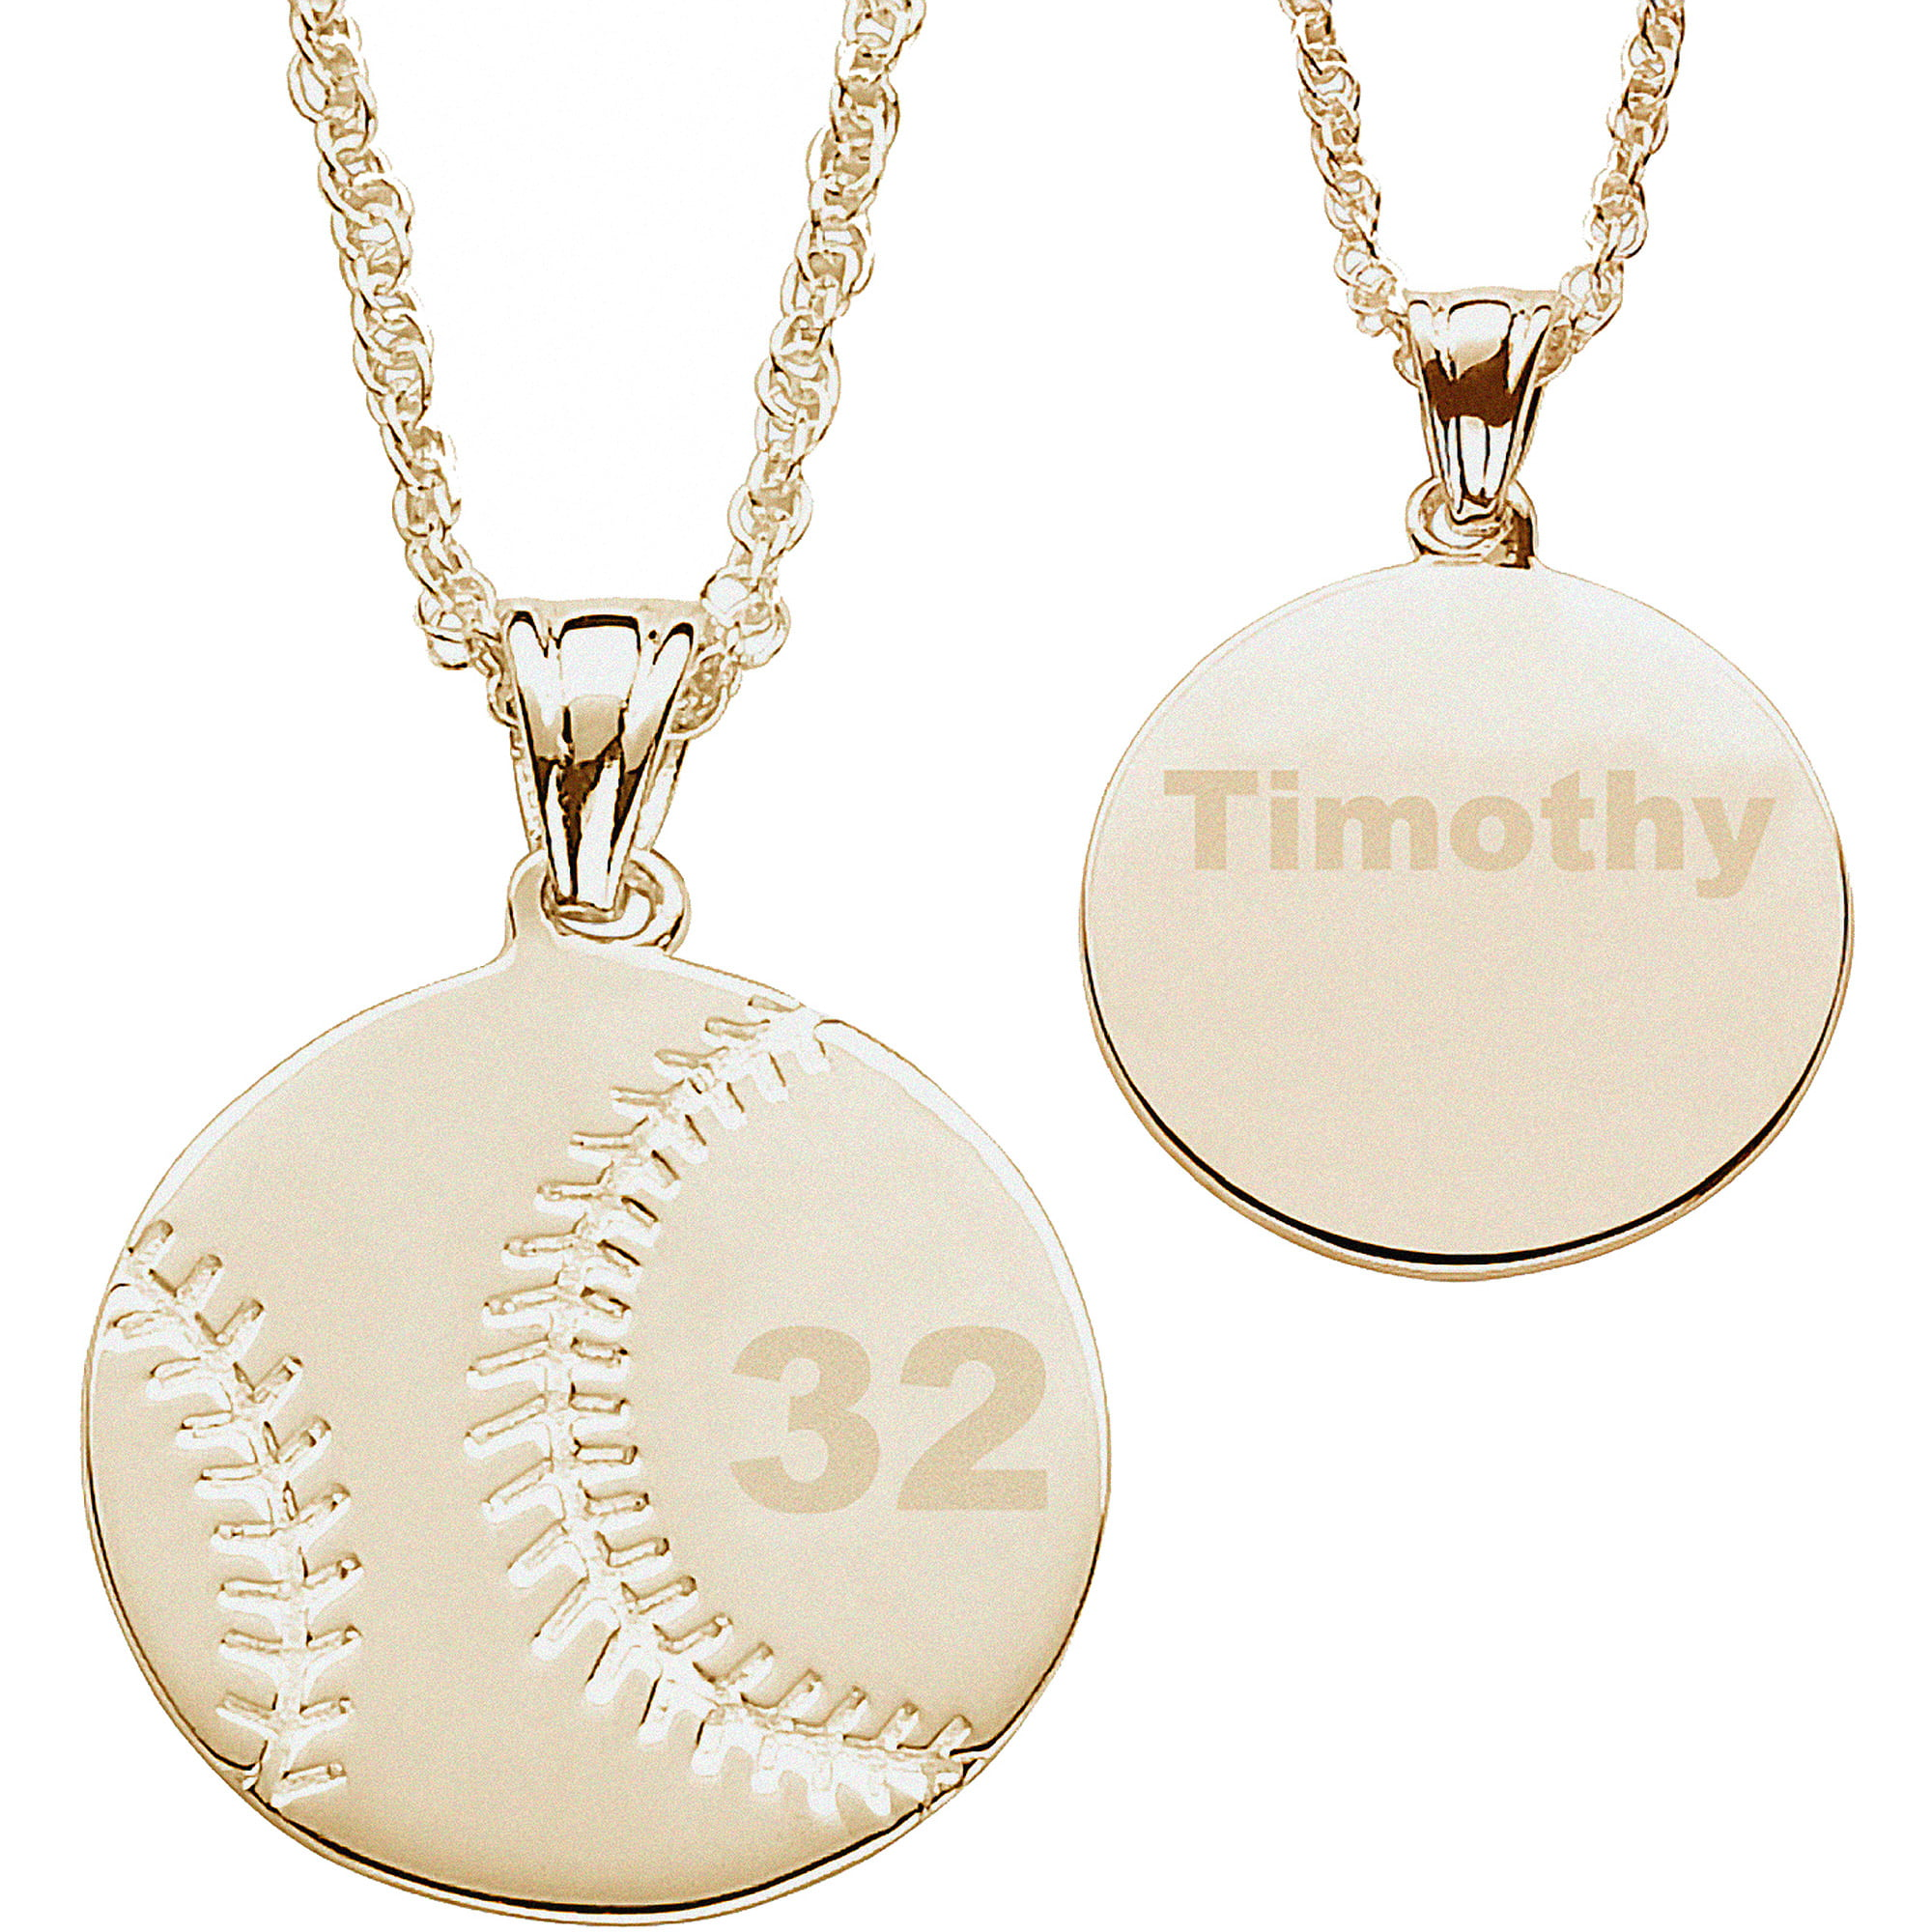 silver personalized necklace discs engraved original product two gold pendant stamped initials hand monogrammed